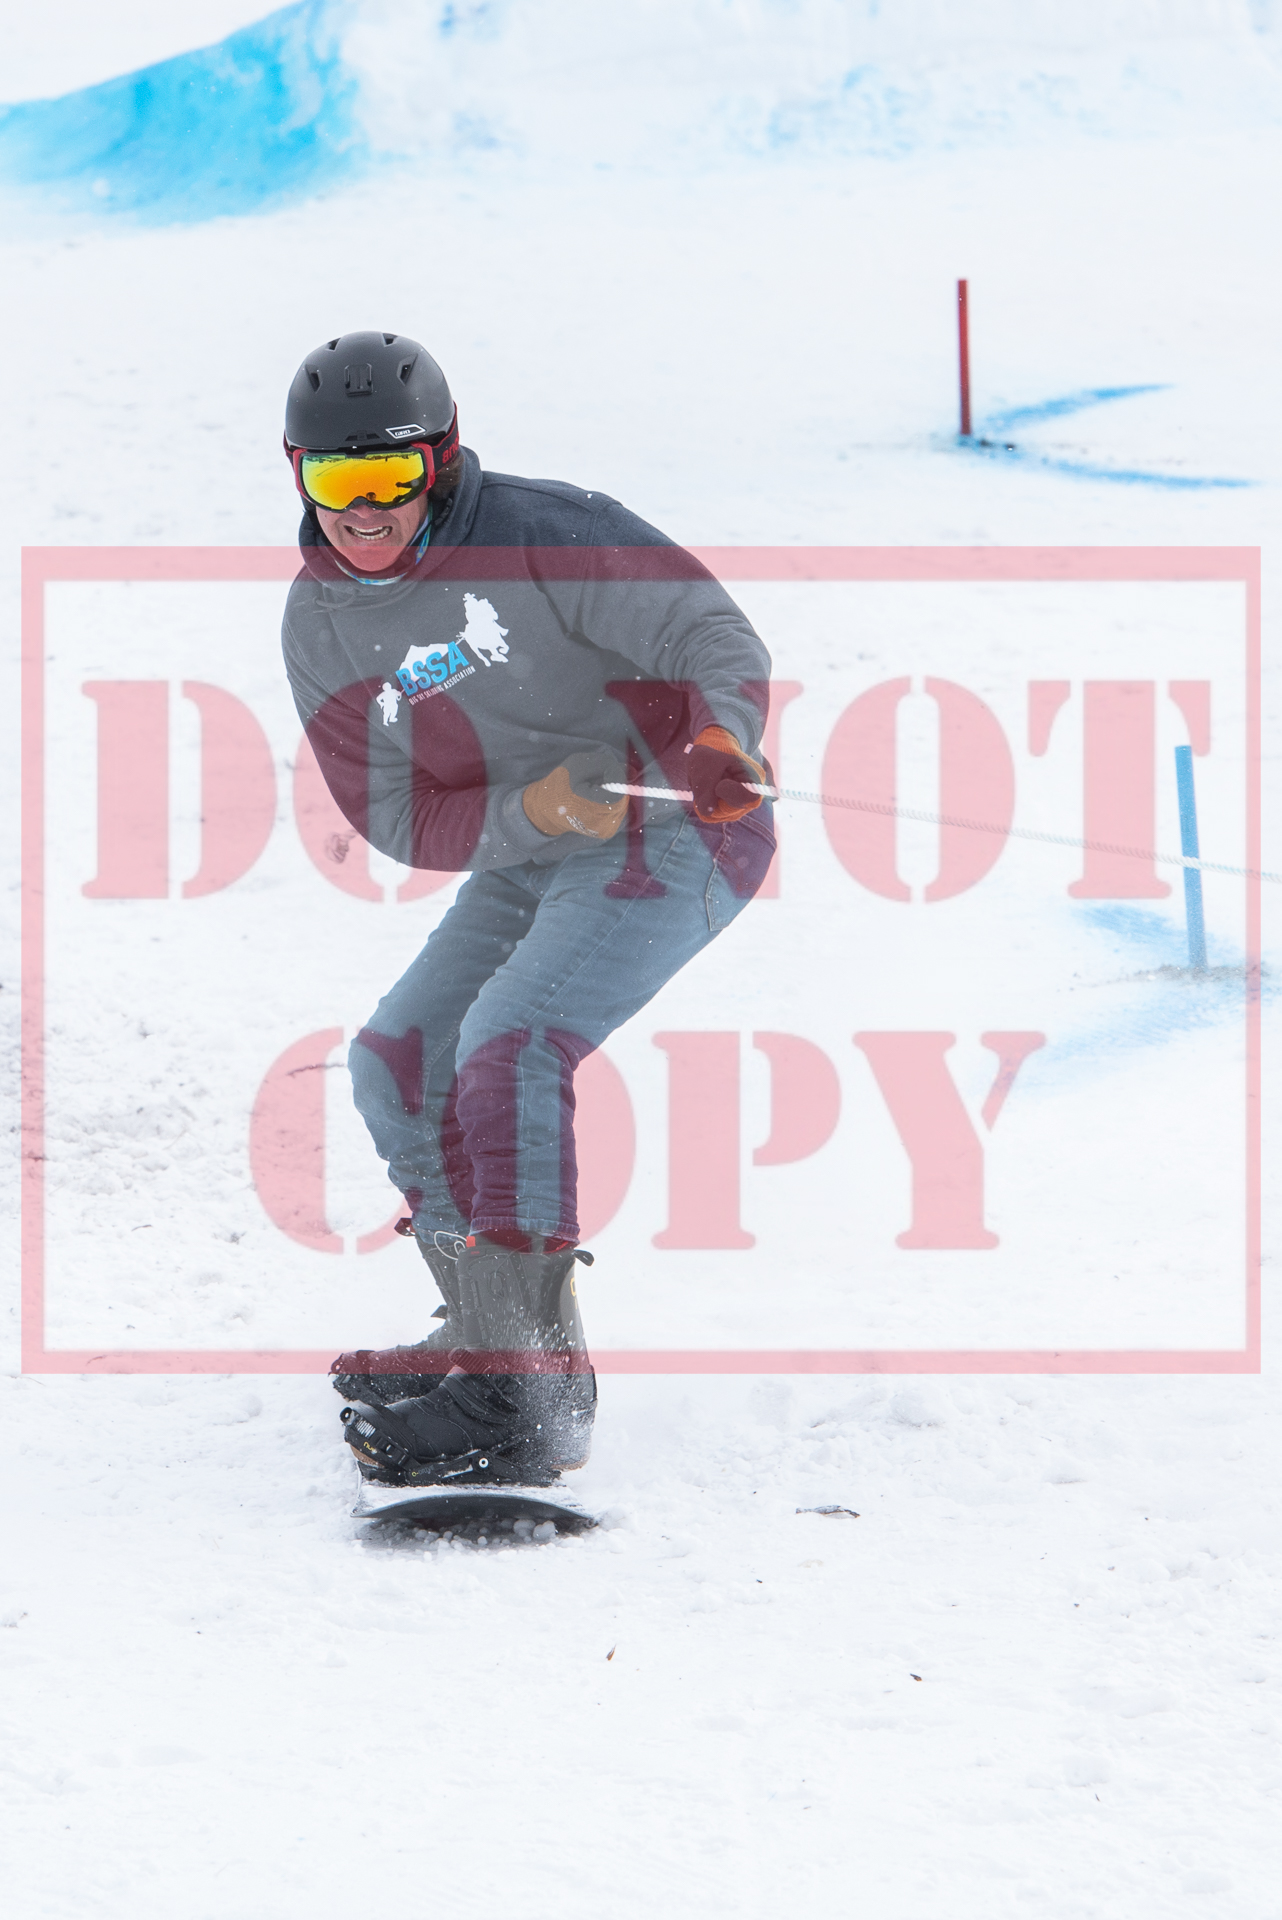 - Audrey Williams - Snowboard 10